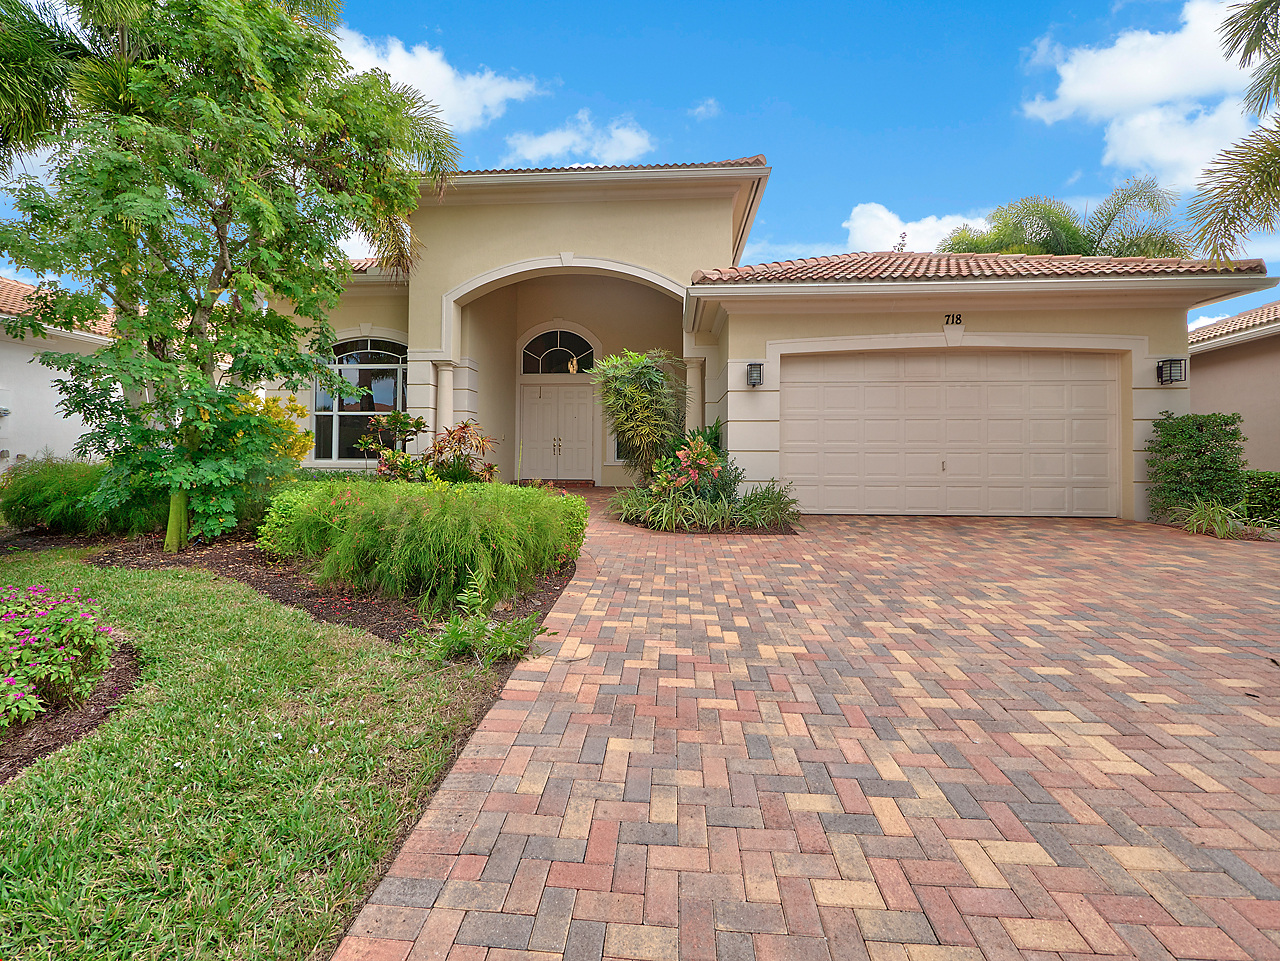 Palm City Homes For Sale community image